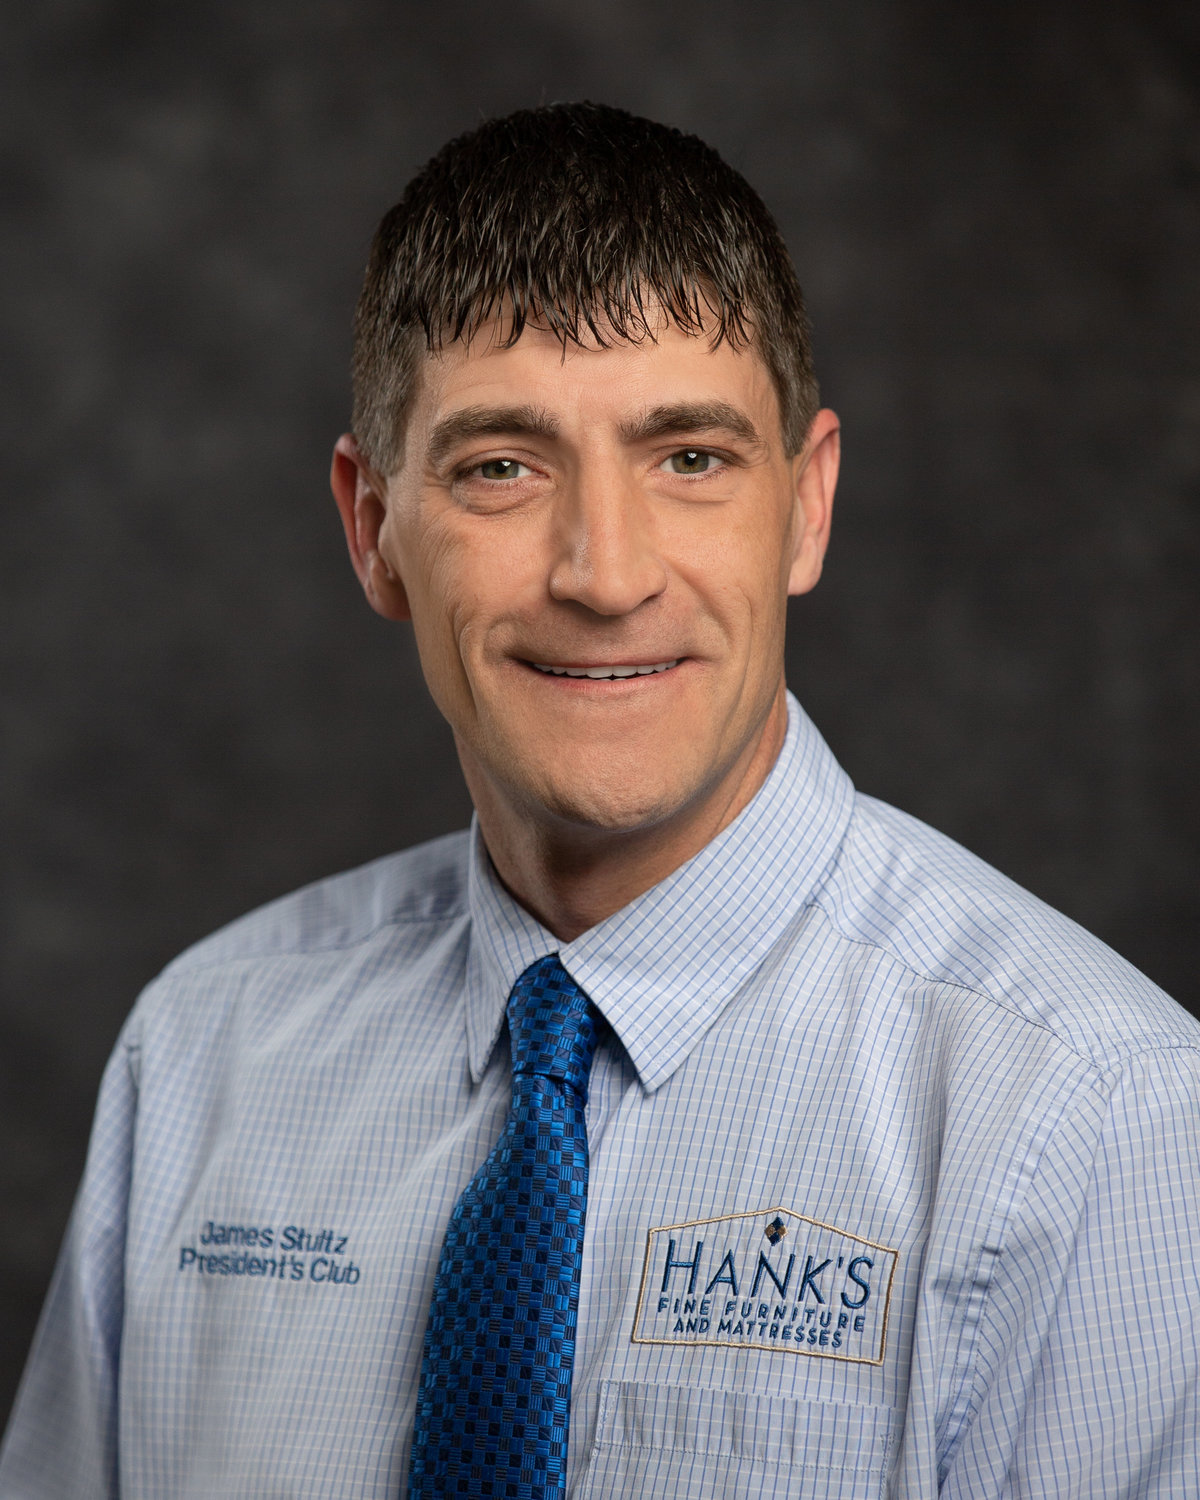 Head shot of James Stultz for Hanks Fine Furniture salesman of the year.